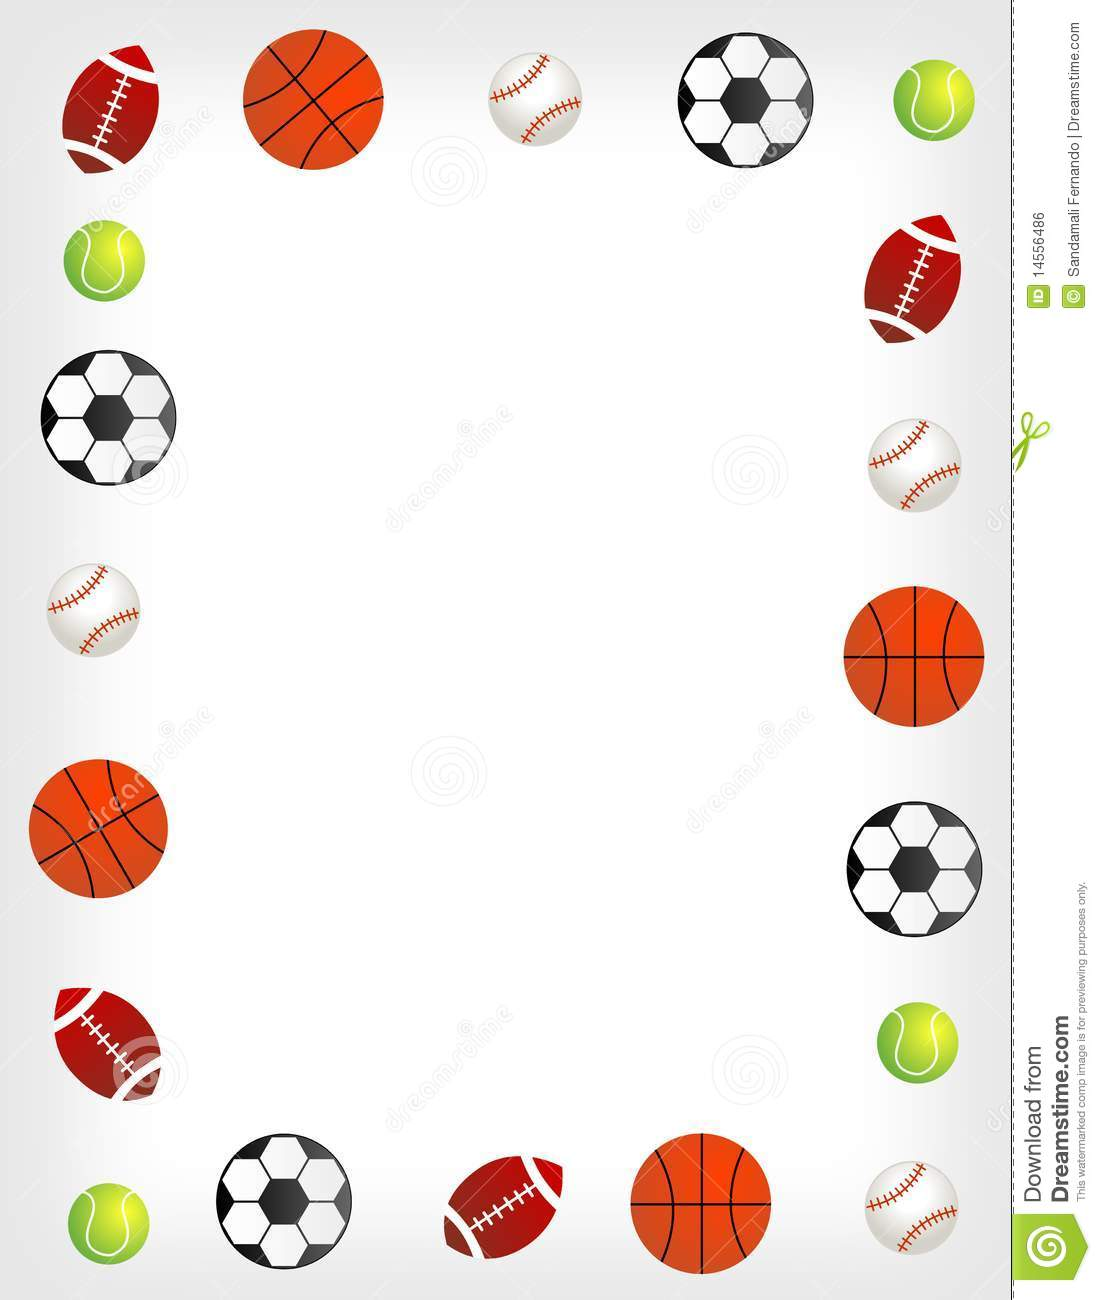 free sports balls scrapbook backgrounds.